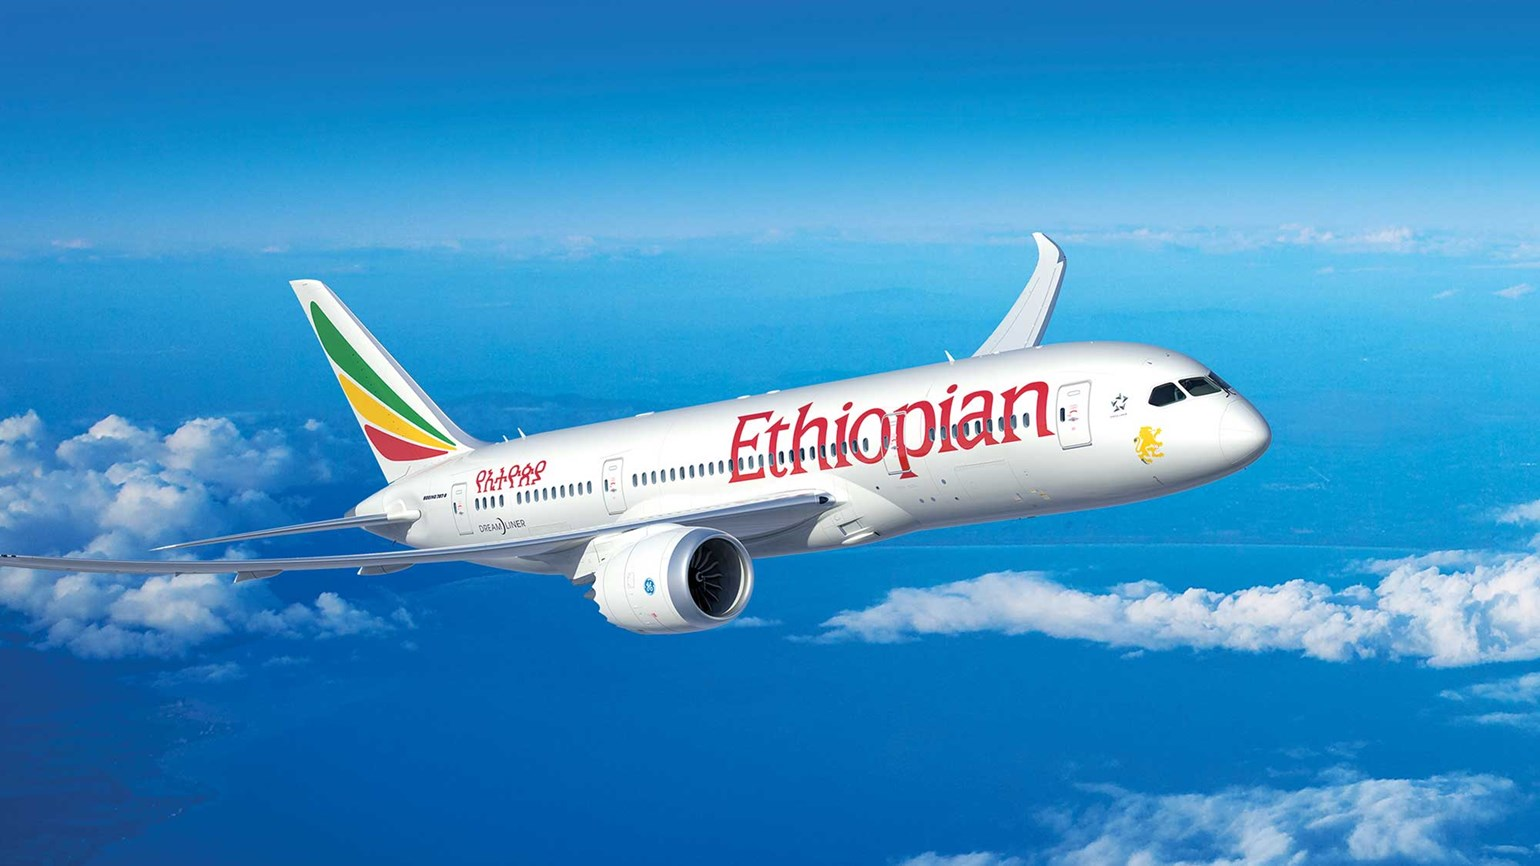 (English) and most visited tourist area on the island, off the northwest coast of Madagascar, welcomes Ethiopian Airlines